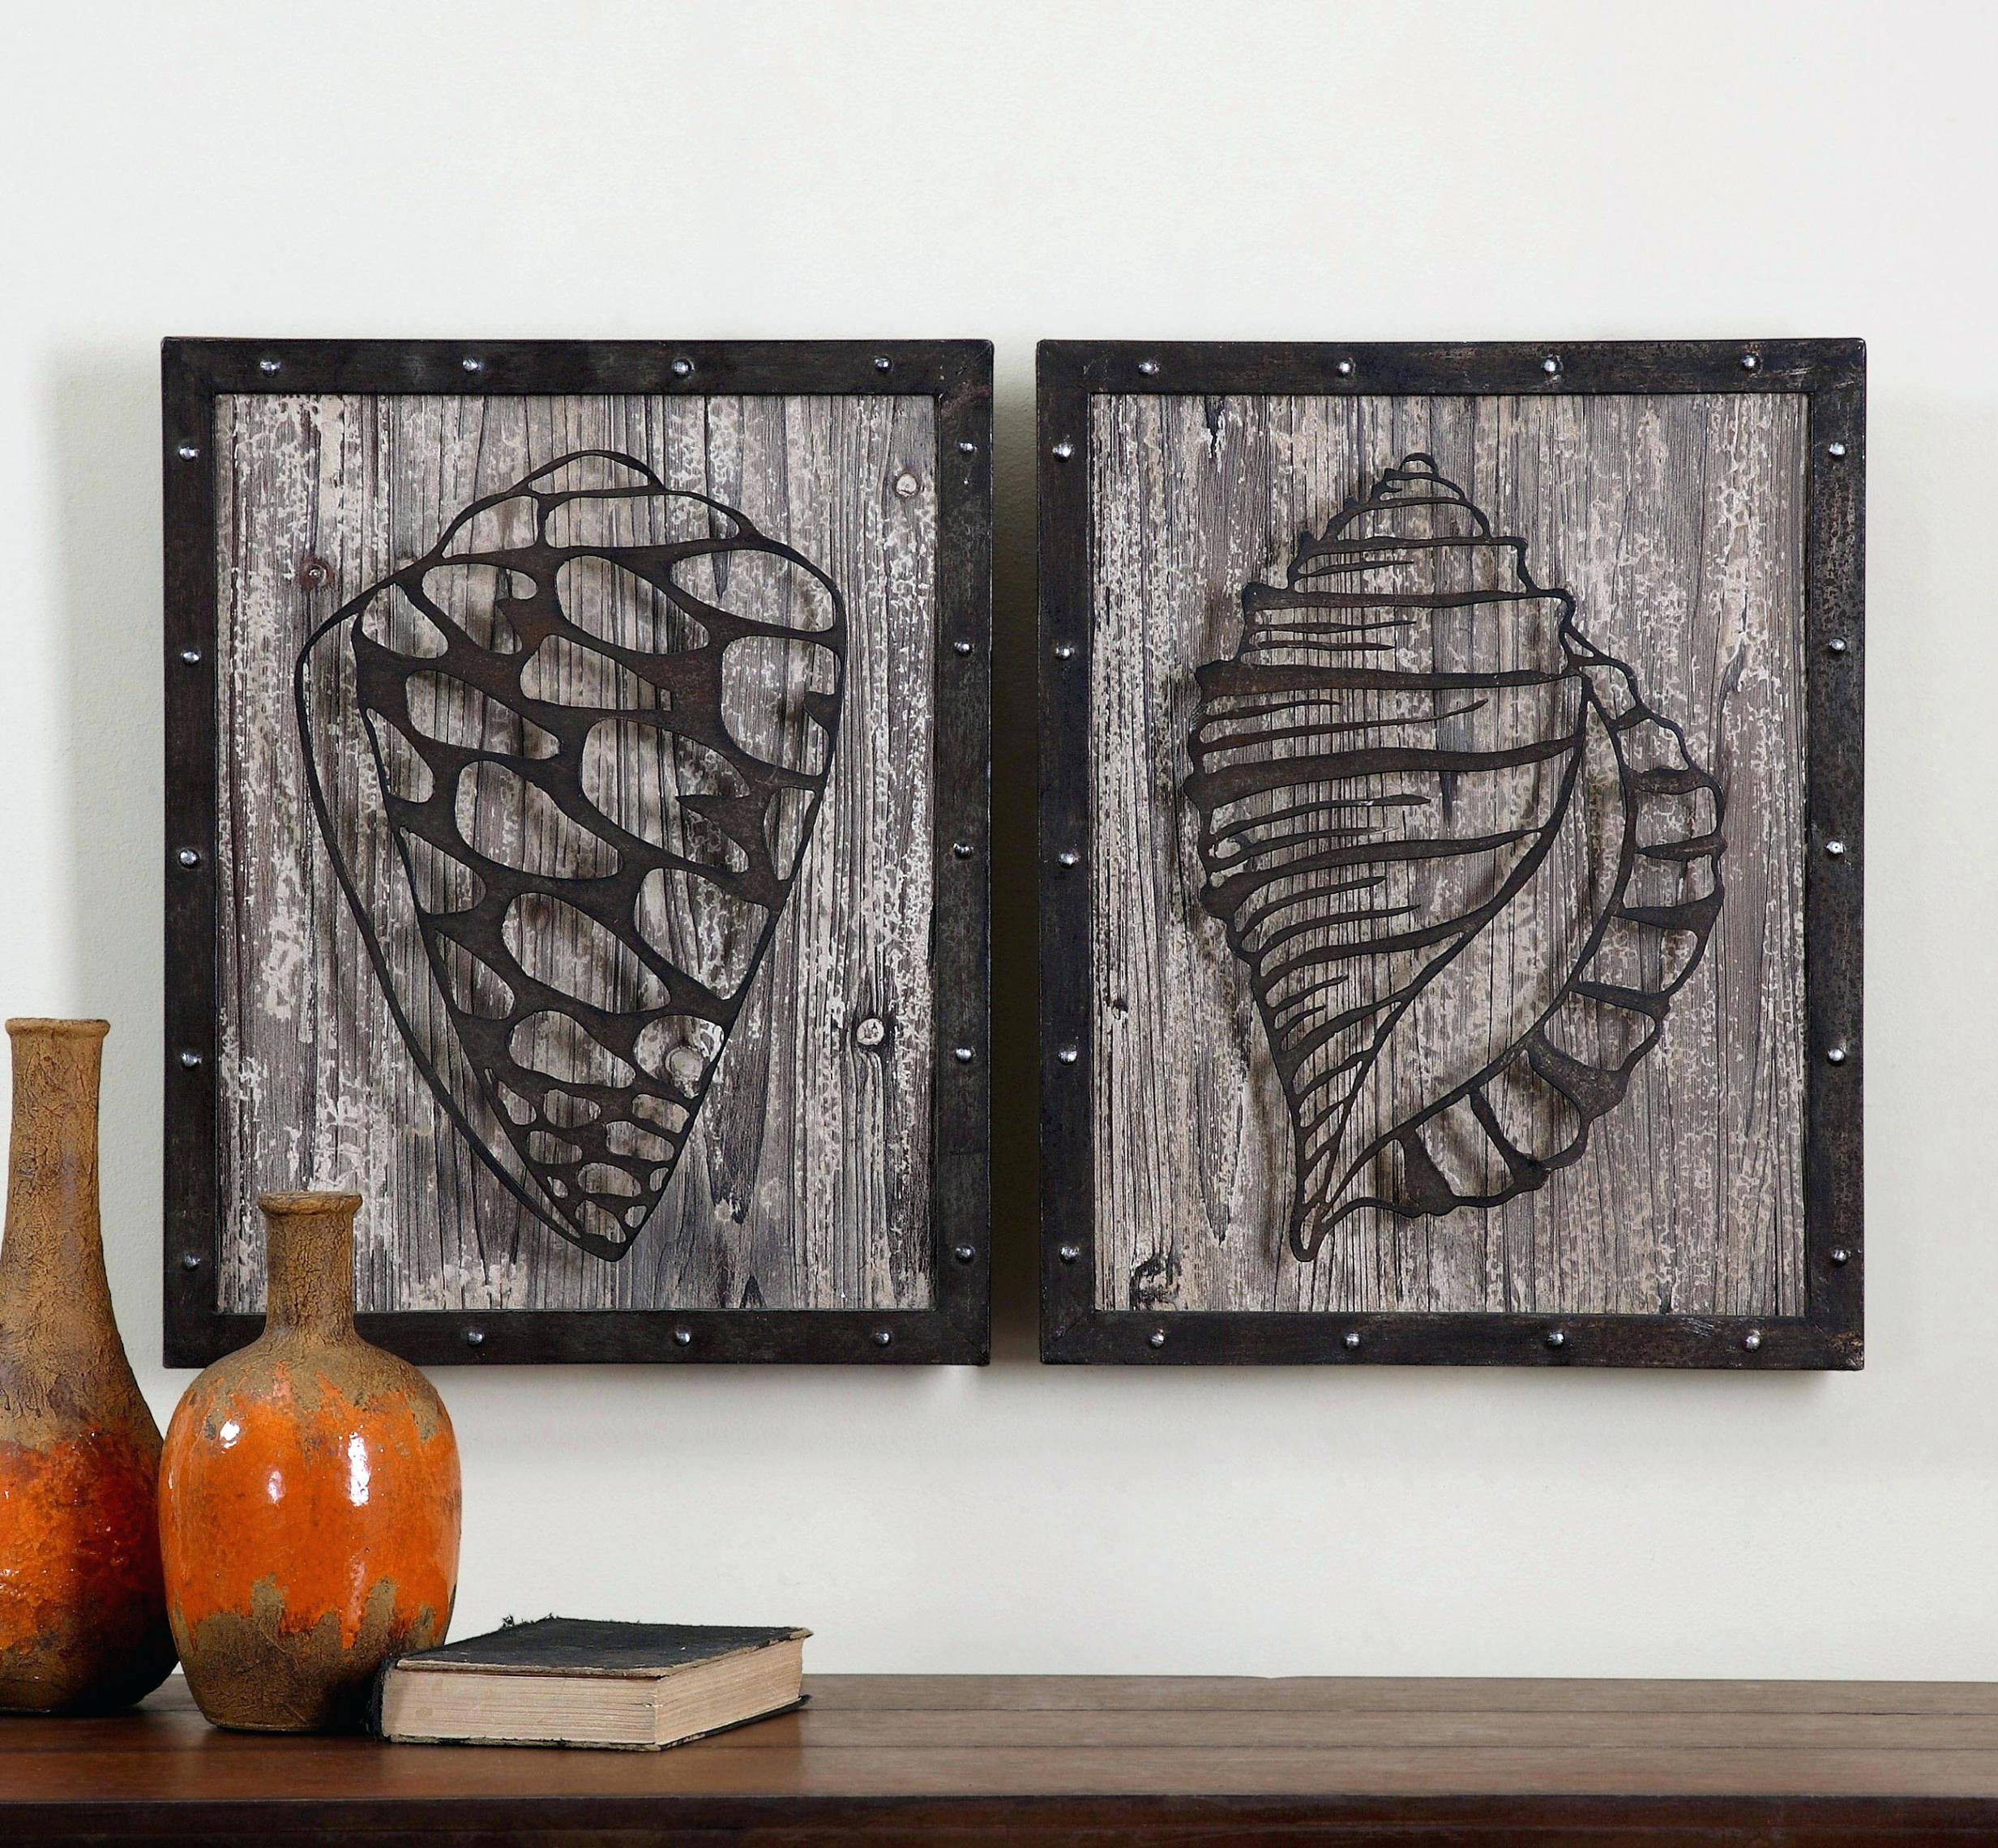 Wall Ideas : Wrought Iron Wall Decor Walmart Zoom Wrought Iron Inside Most Recently Released Walmart Metal Wall Art (View 10 of 30)